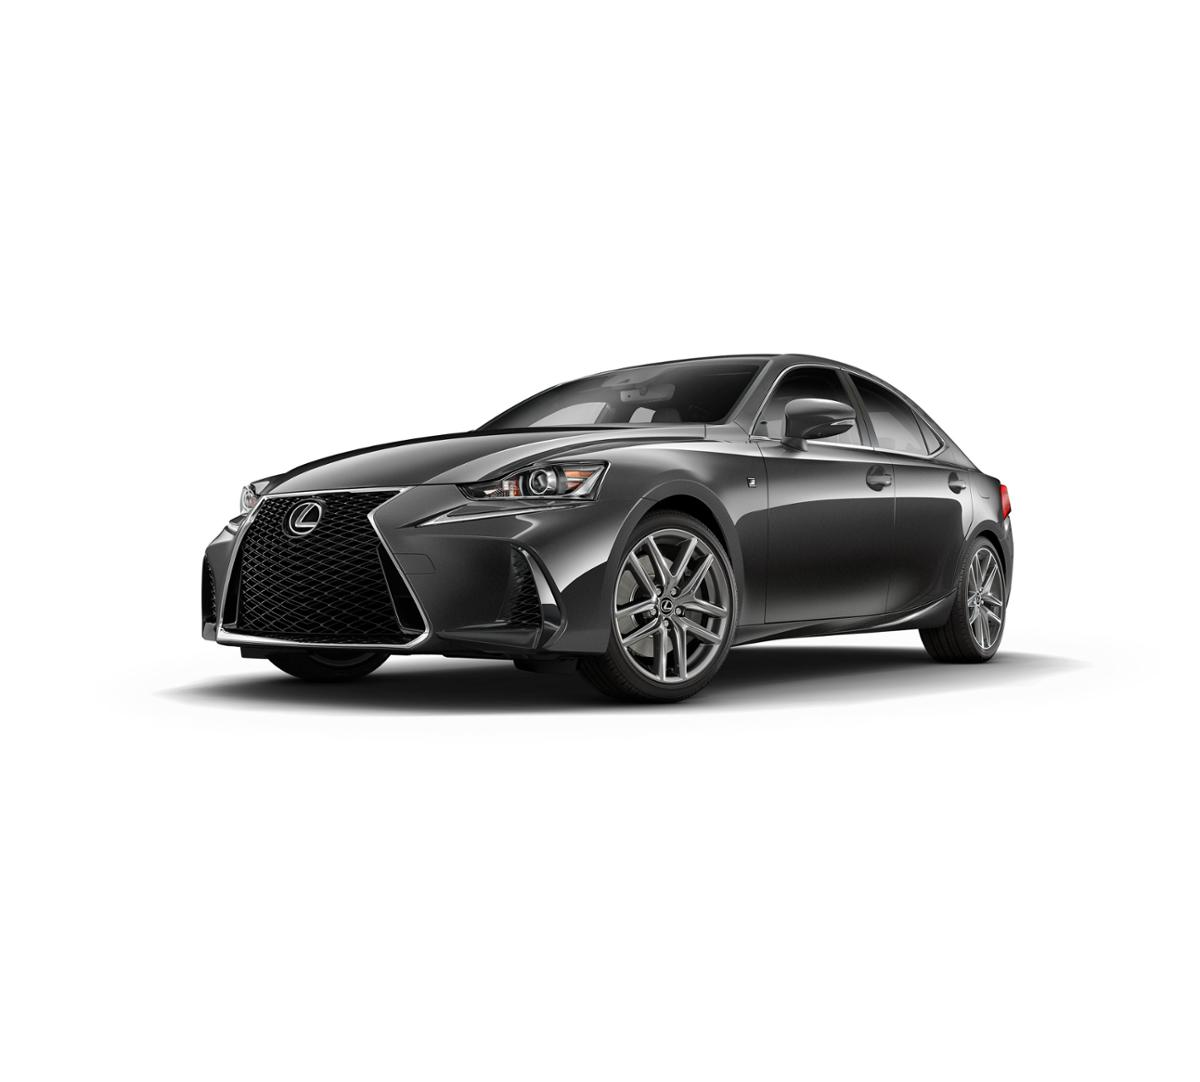 2018 Lexus IS 350 Vehicle Photo in Mission Viejo, CA 92692